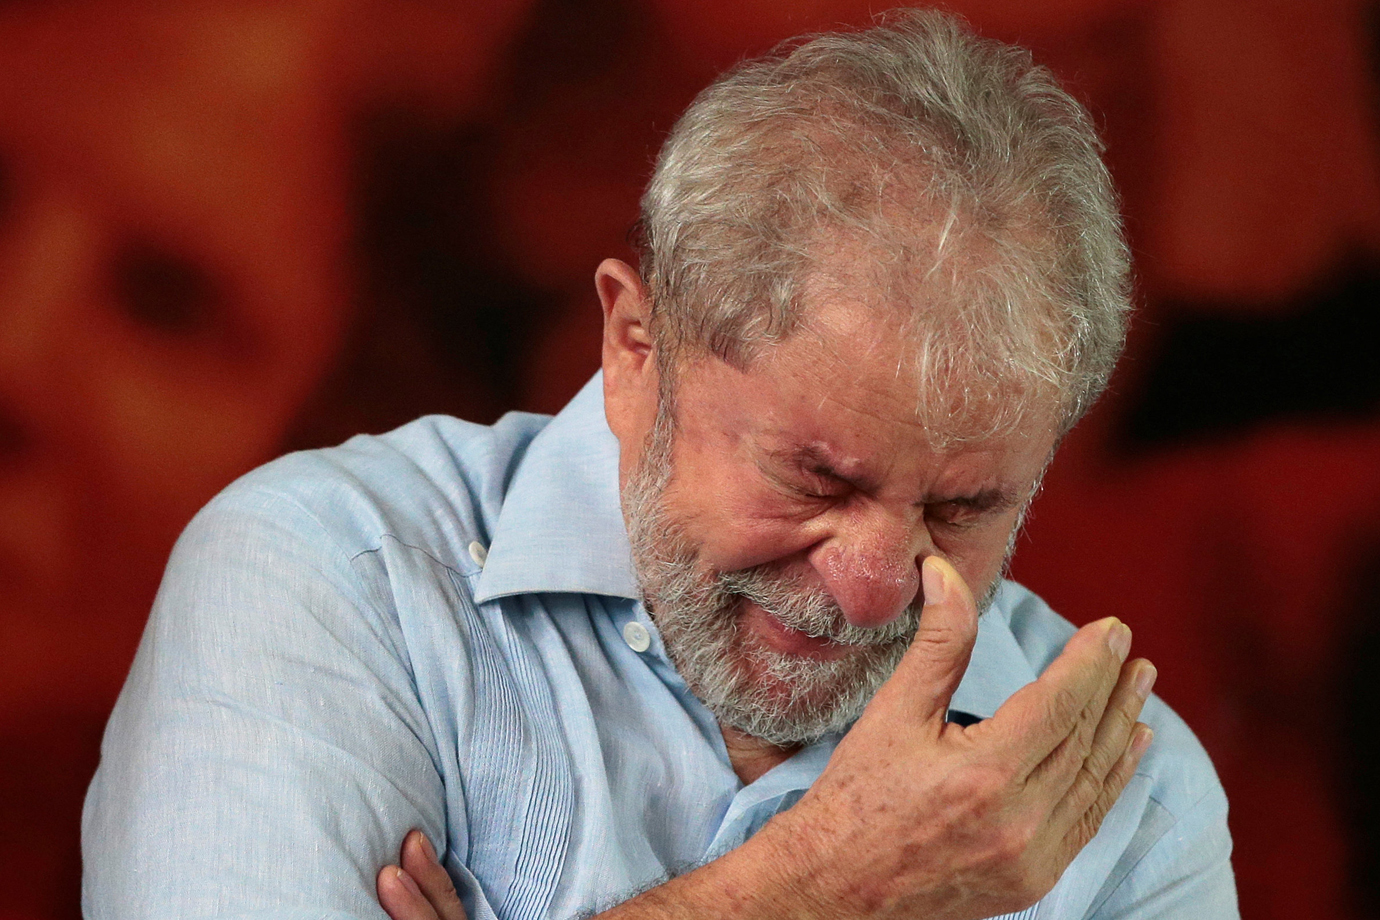 Former Brazilian president Luiz Inacio Lula da Silva attends a meeting with members of the Workers Party (PT) in Sao Paulo